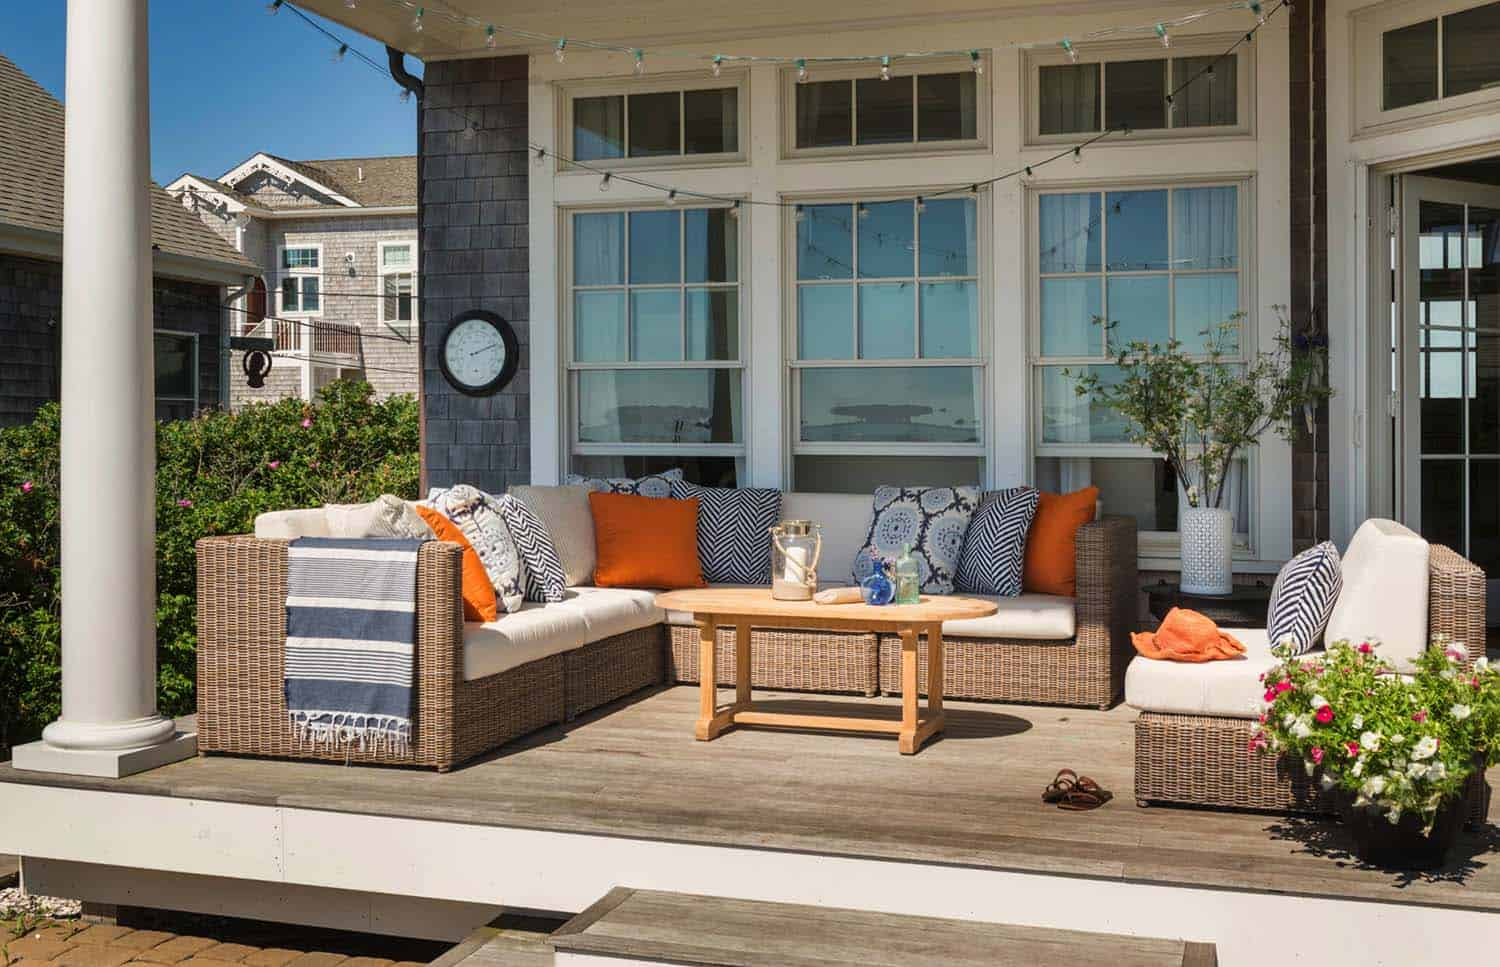 36 Breezy Beach Inspired Diy Home Decorating Ideas: 30+ Amazing Beach Style Deck Ideas Promoting Relaxation